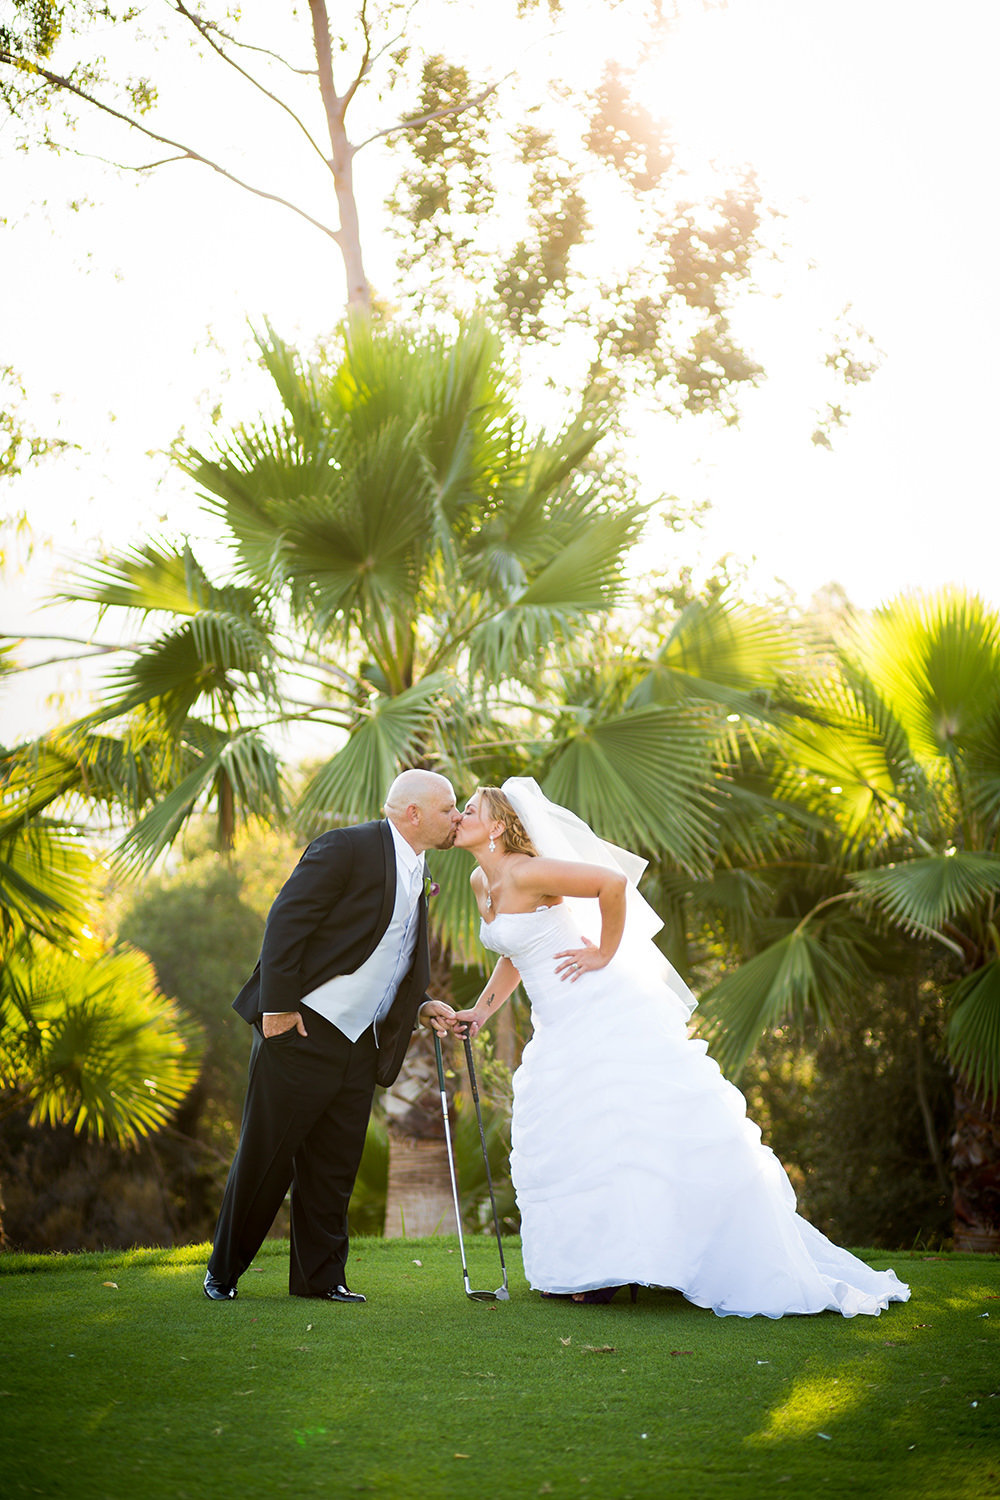 30SycuanResortWeddingPhotographer